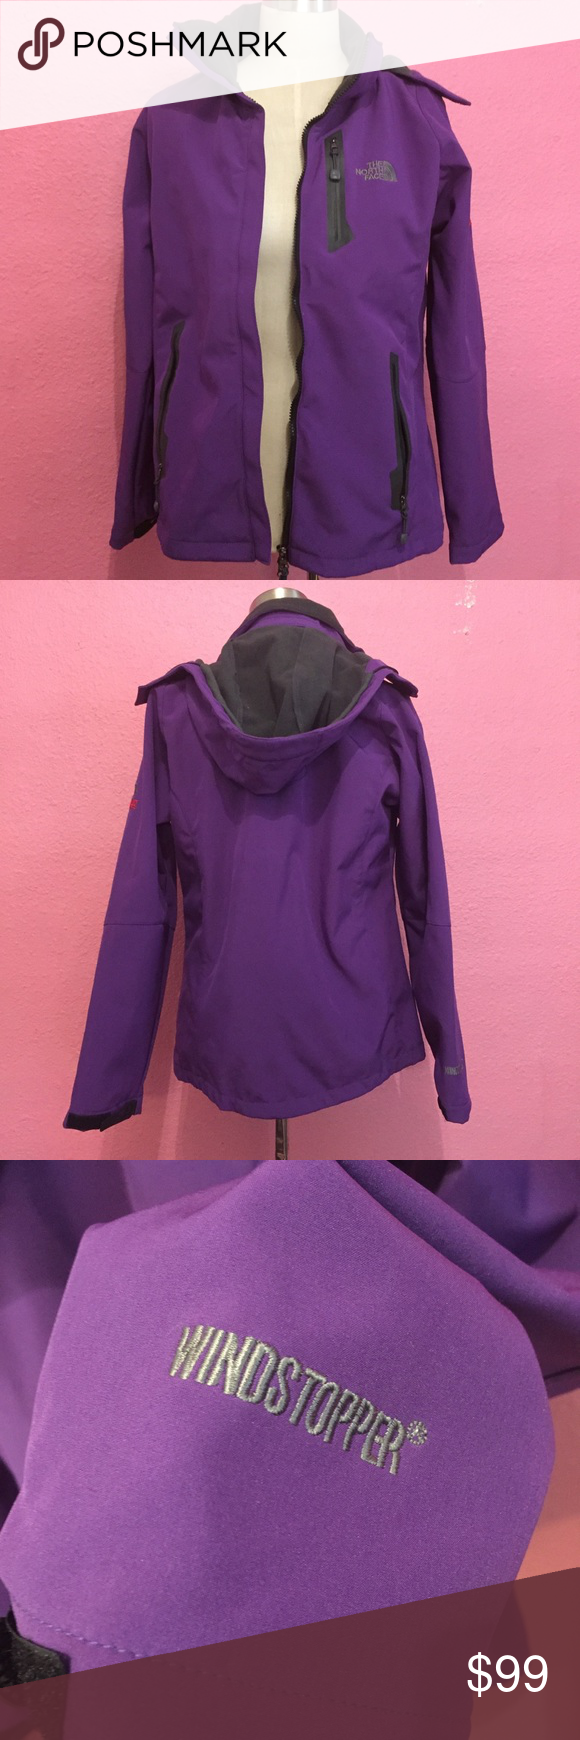 The North Face Summit Series Wind Stopper Jacket North Face Jacket The North Face Jackets [ 1740 x 580 Pixel ]